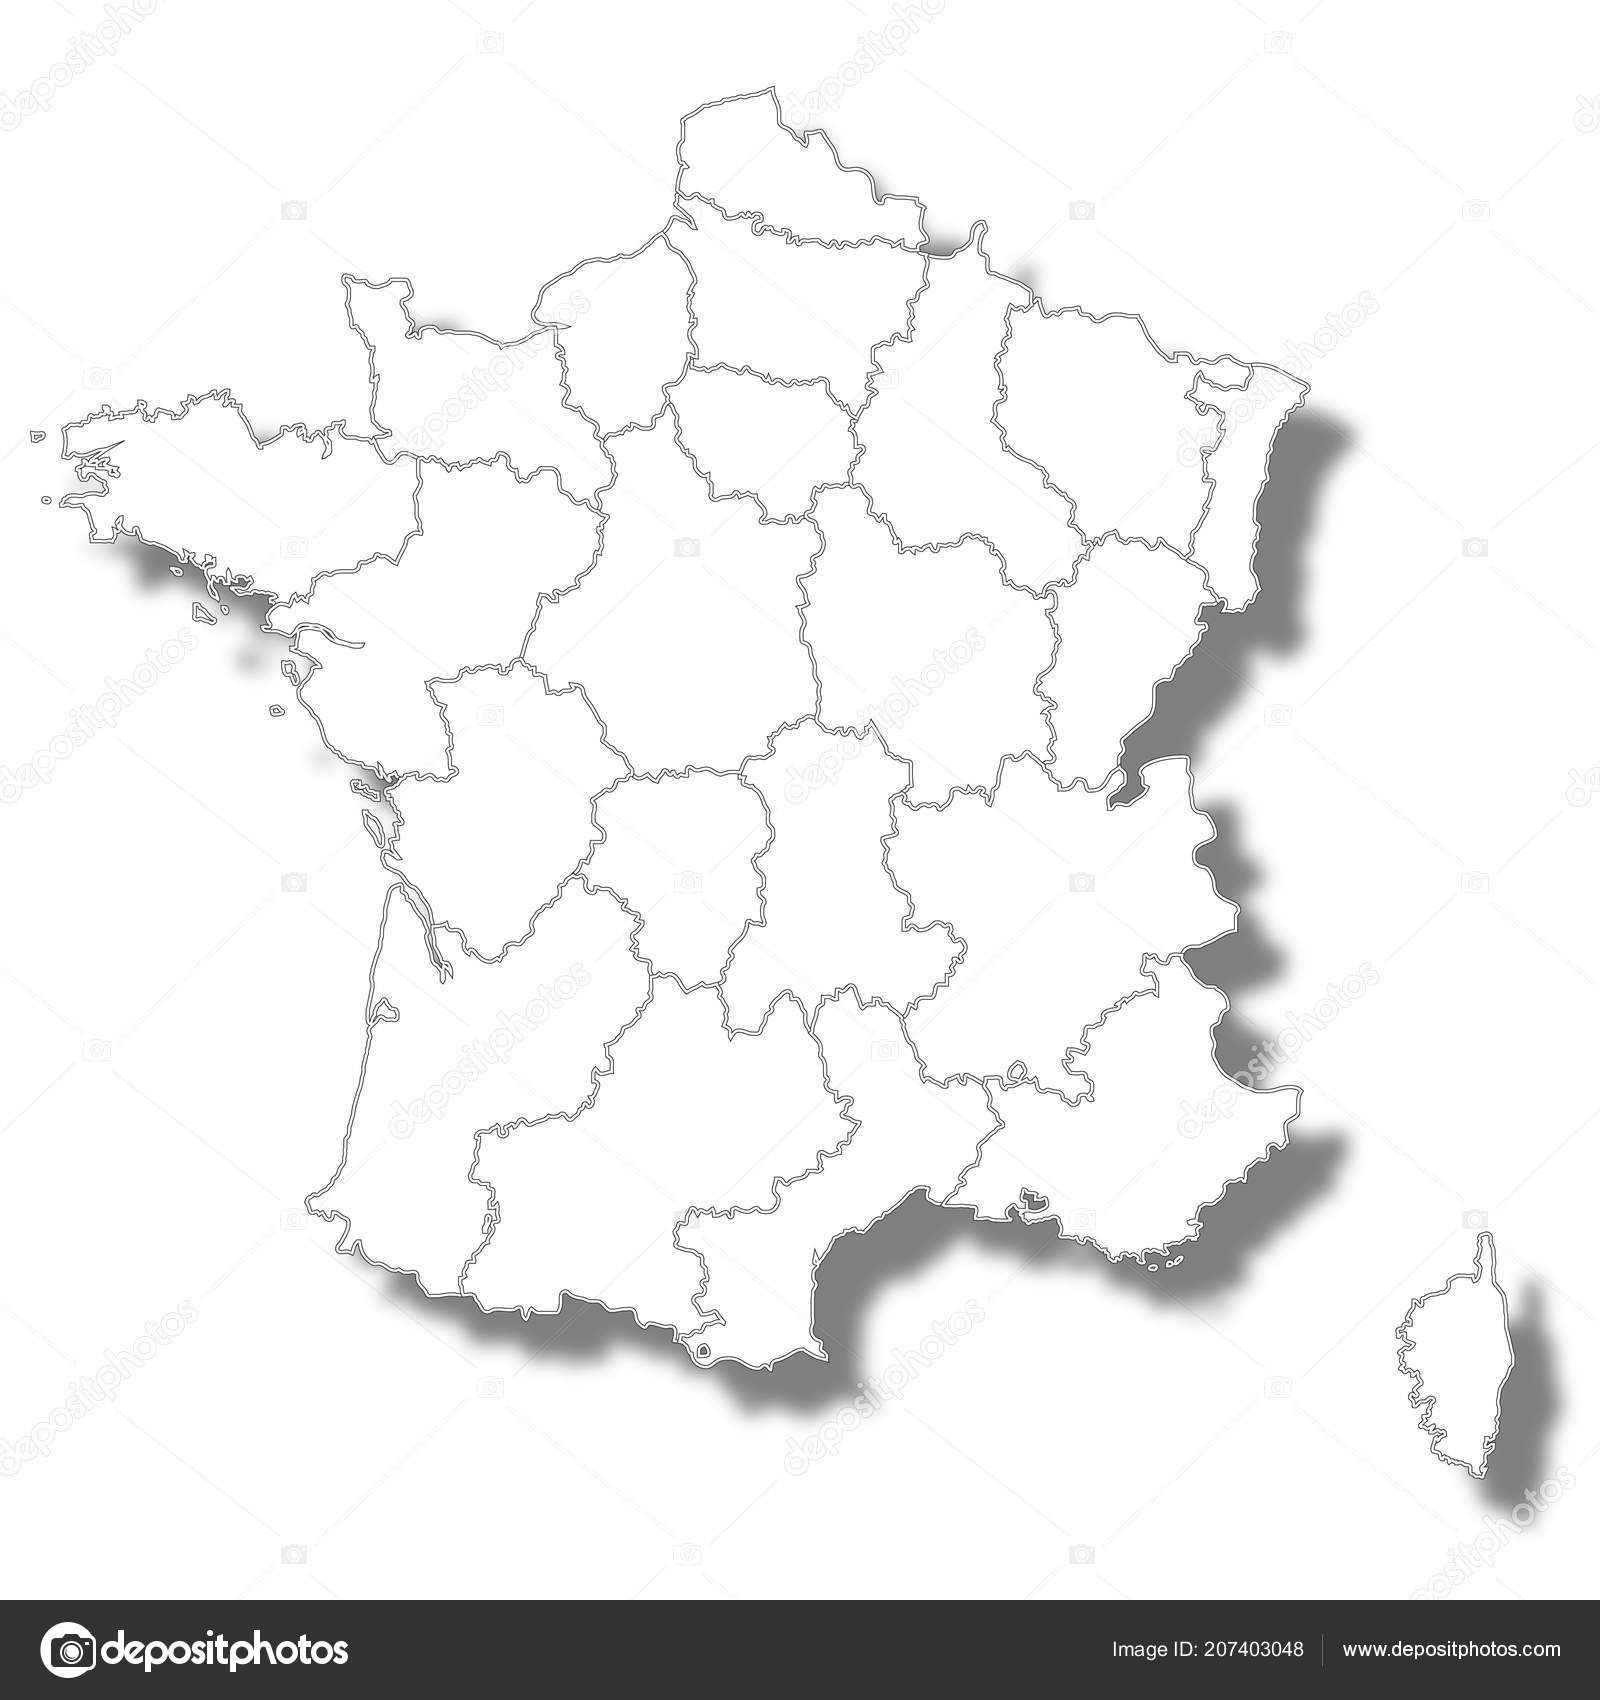 Country Map Of France.France Country Map Icon Stock Vector C Jboy24 207403048